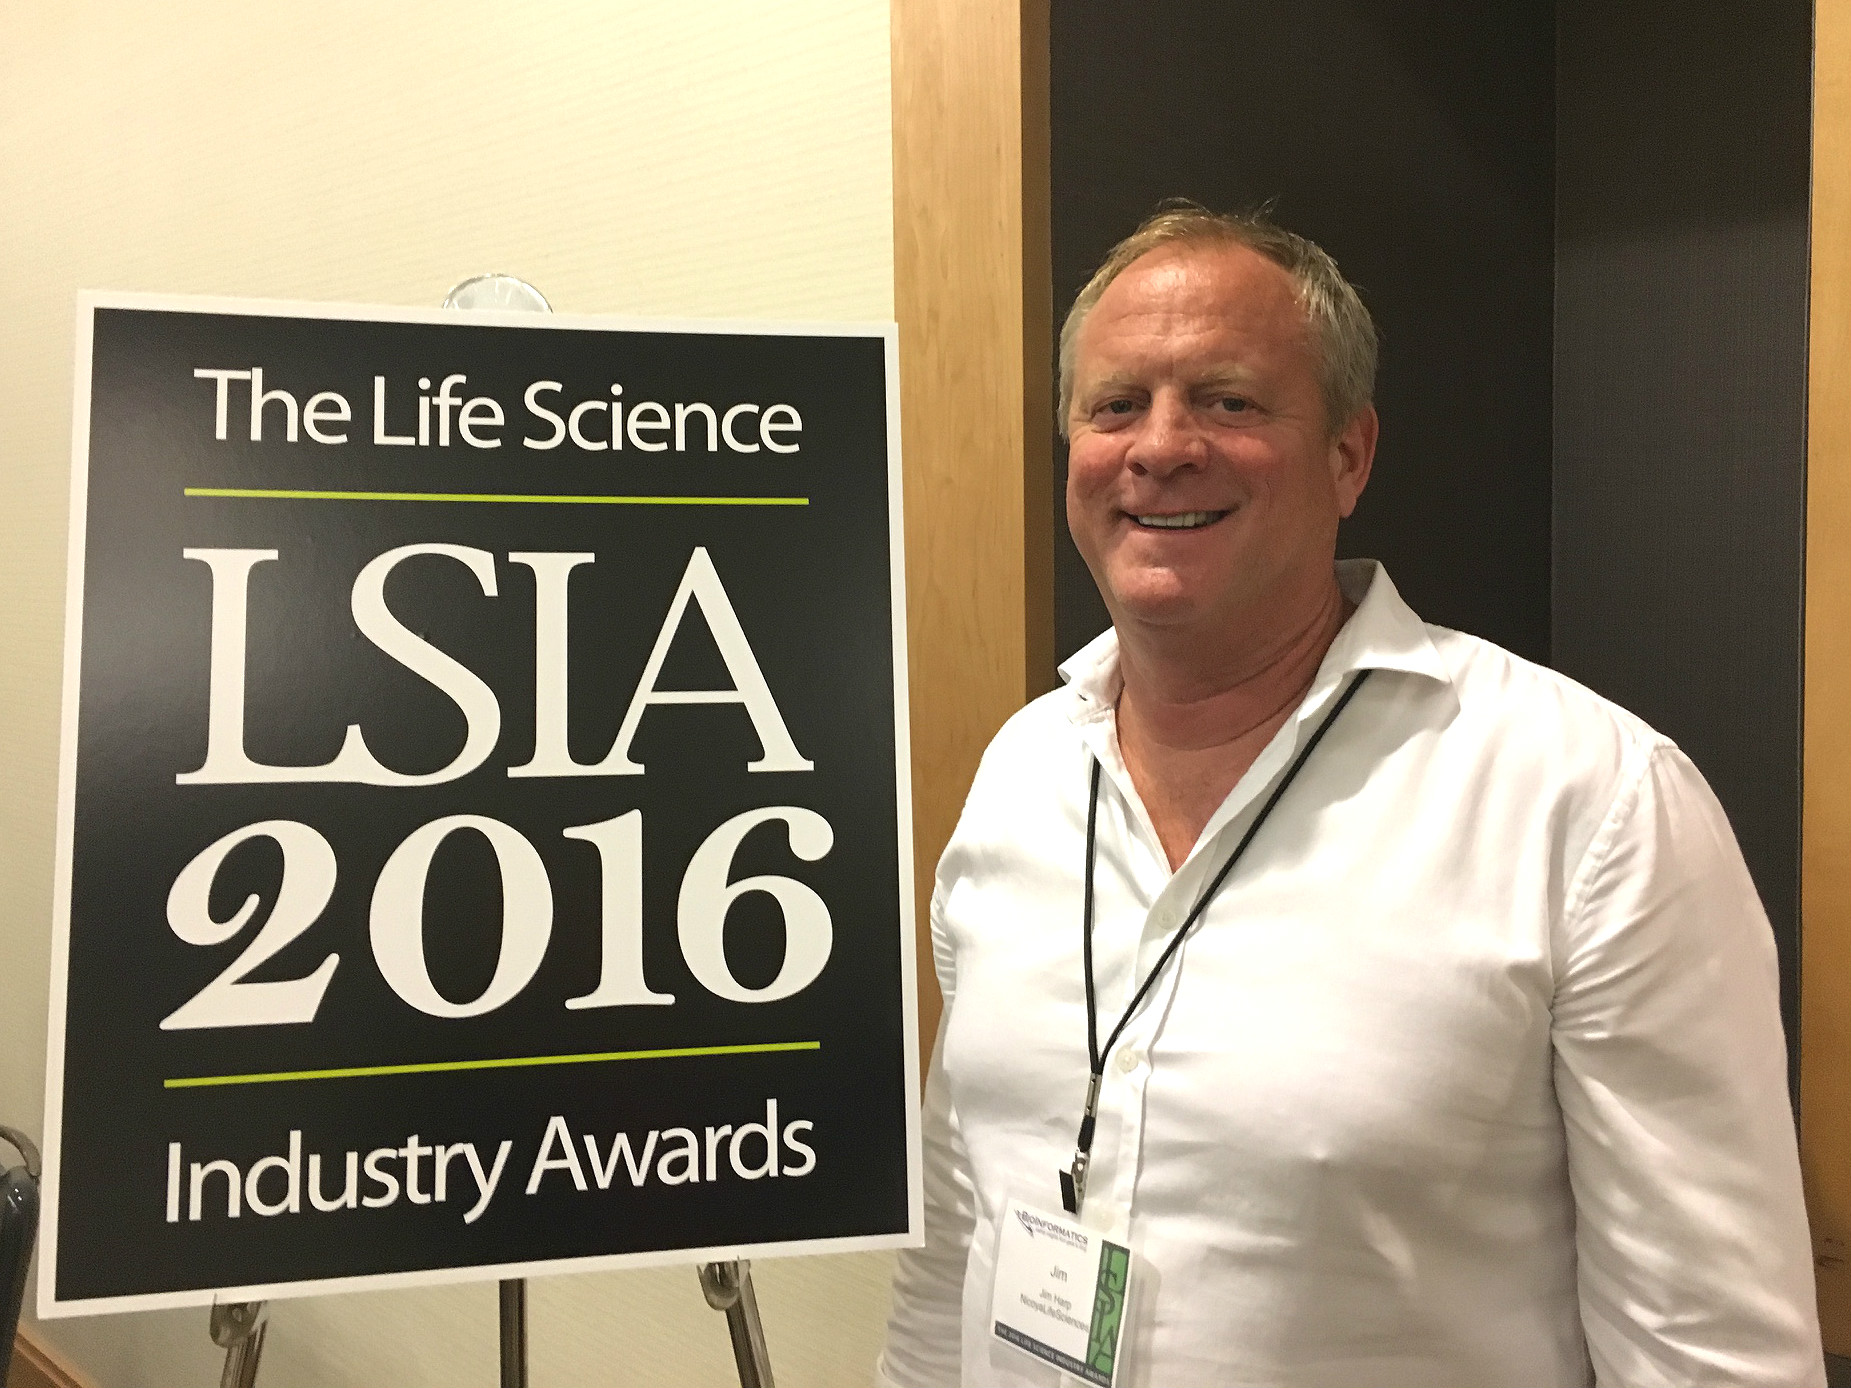 Life Science Industry Awards 2016